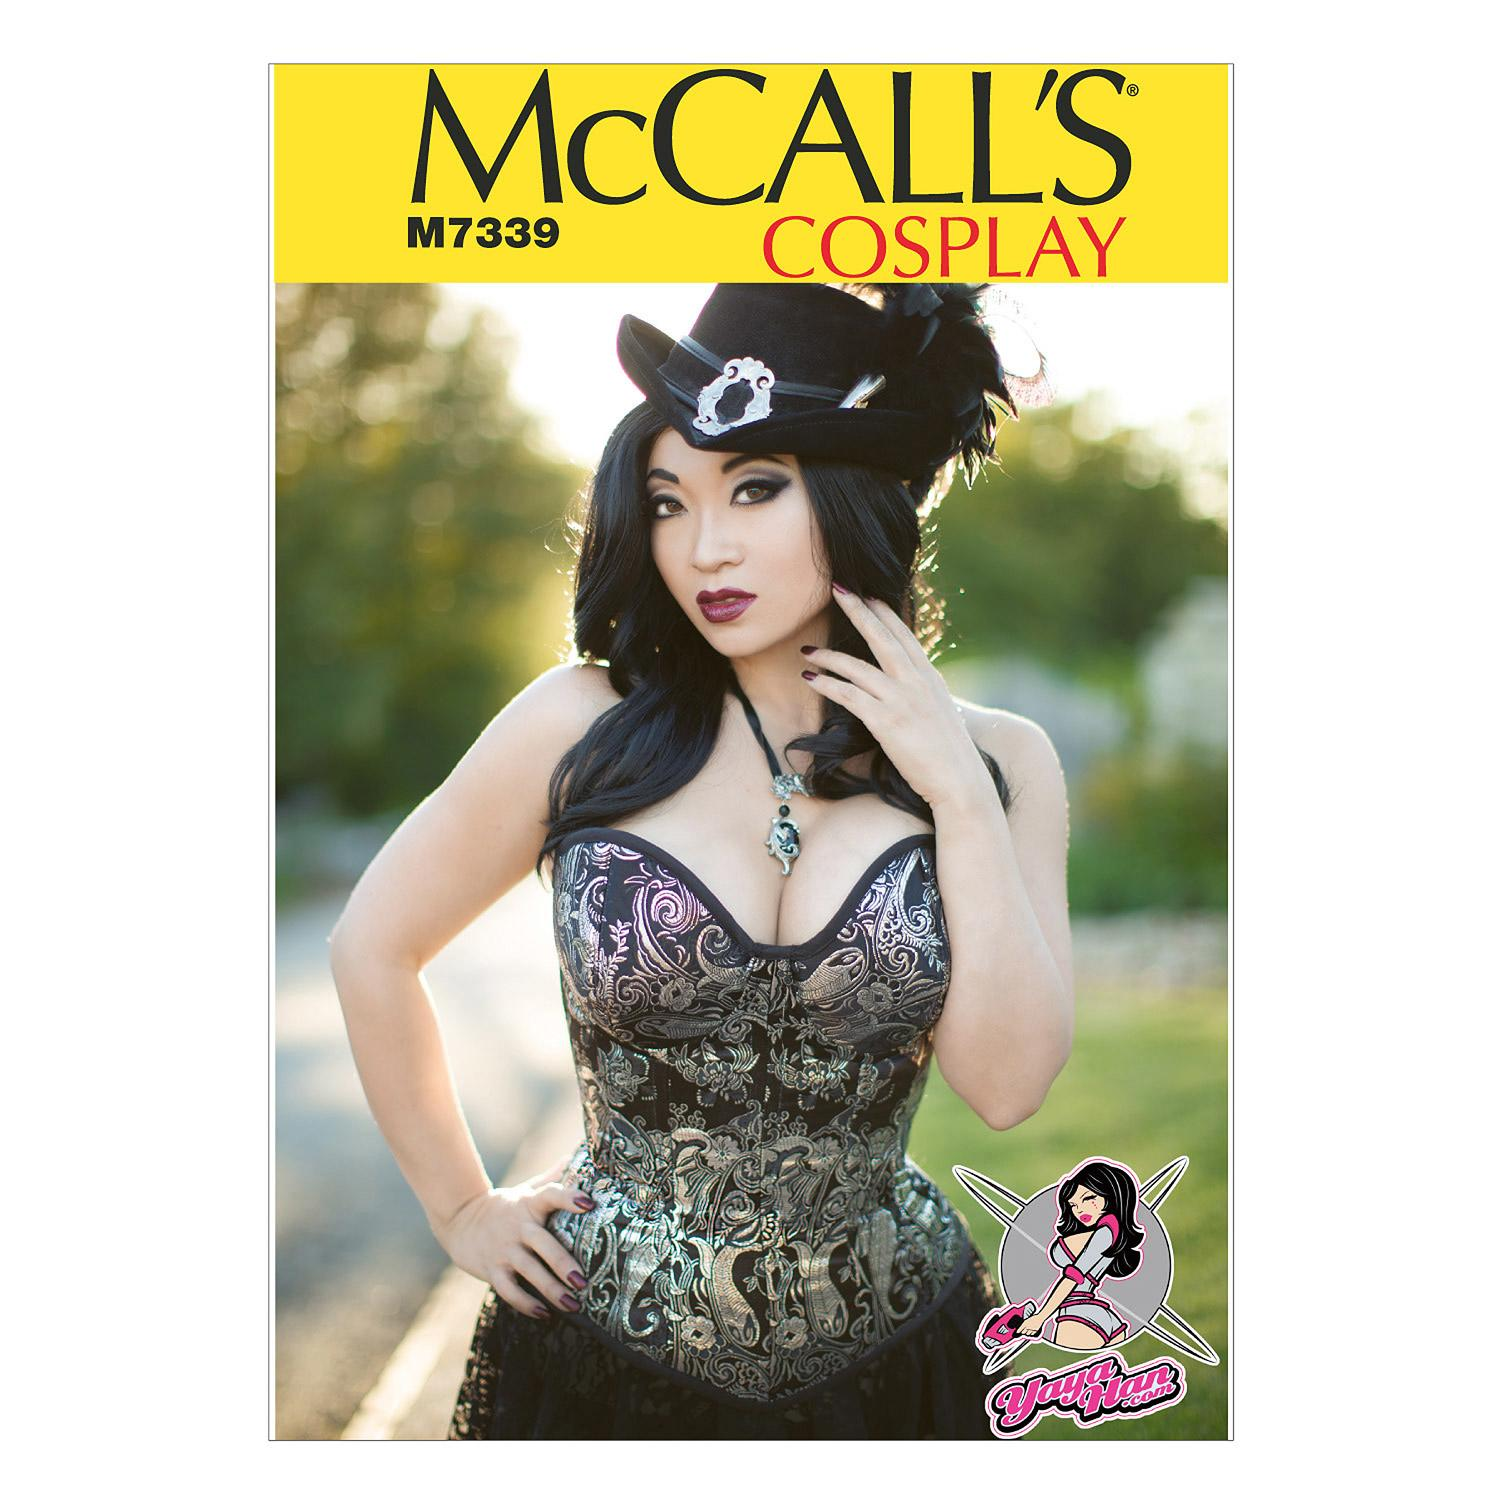 McCalls M7339 A/B, C & D Cup Sizes, Corsets, Costumes